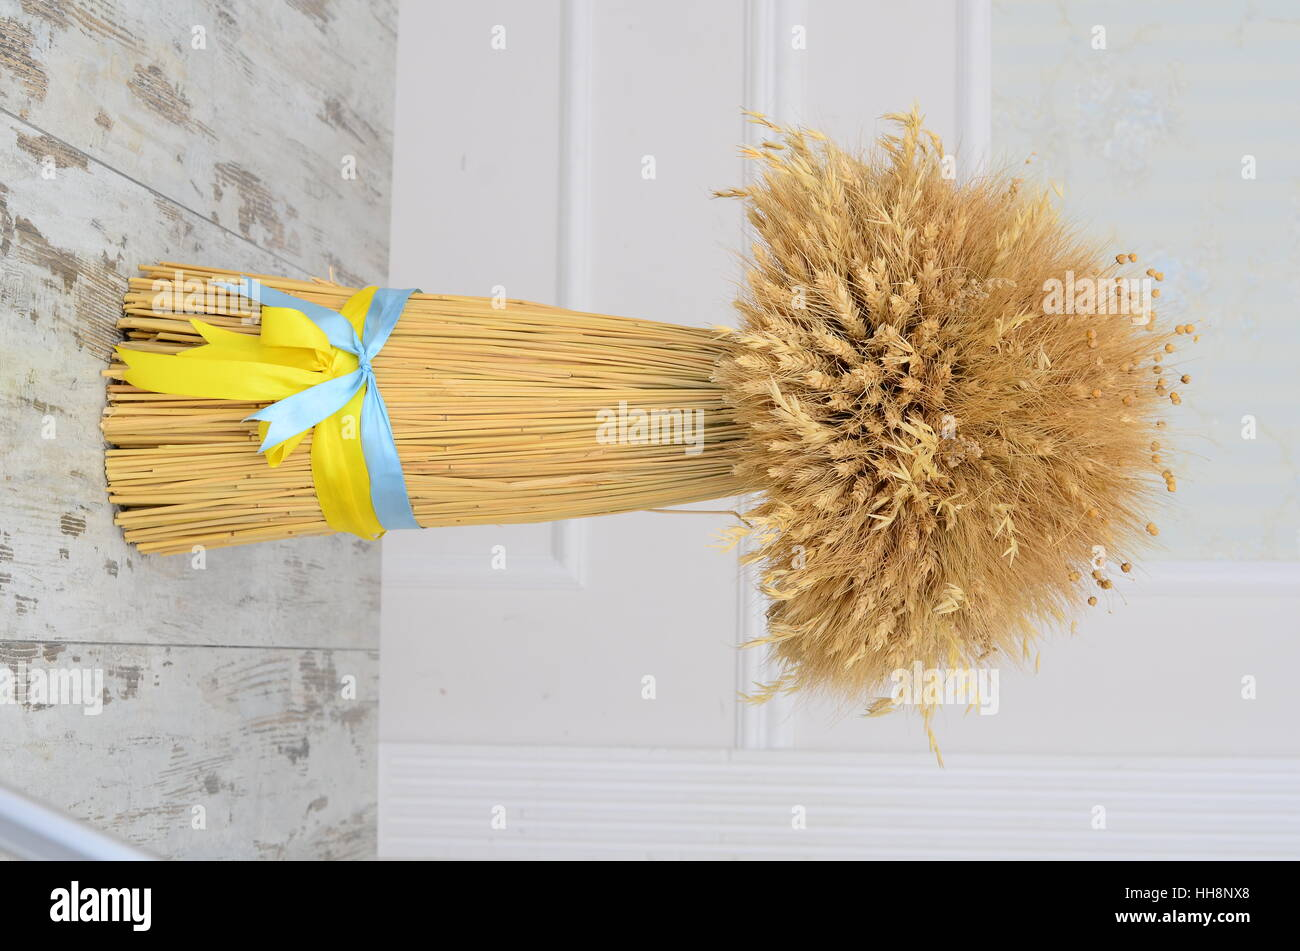 Didukh is a Ukrainian traditional symbol -  decorative reap made out of wheat ears, which encourages harvest. - Stock Image